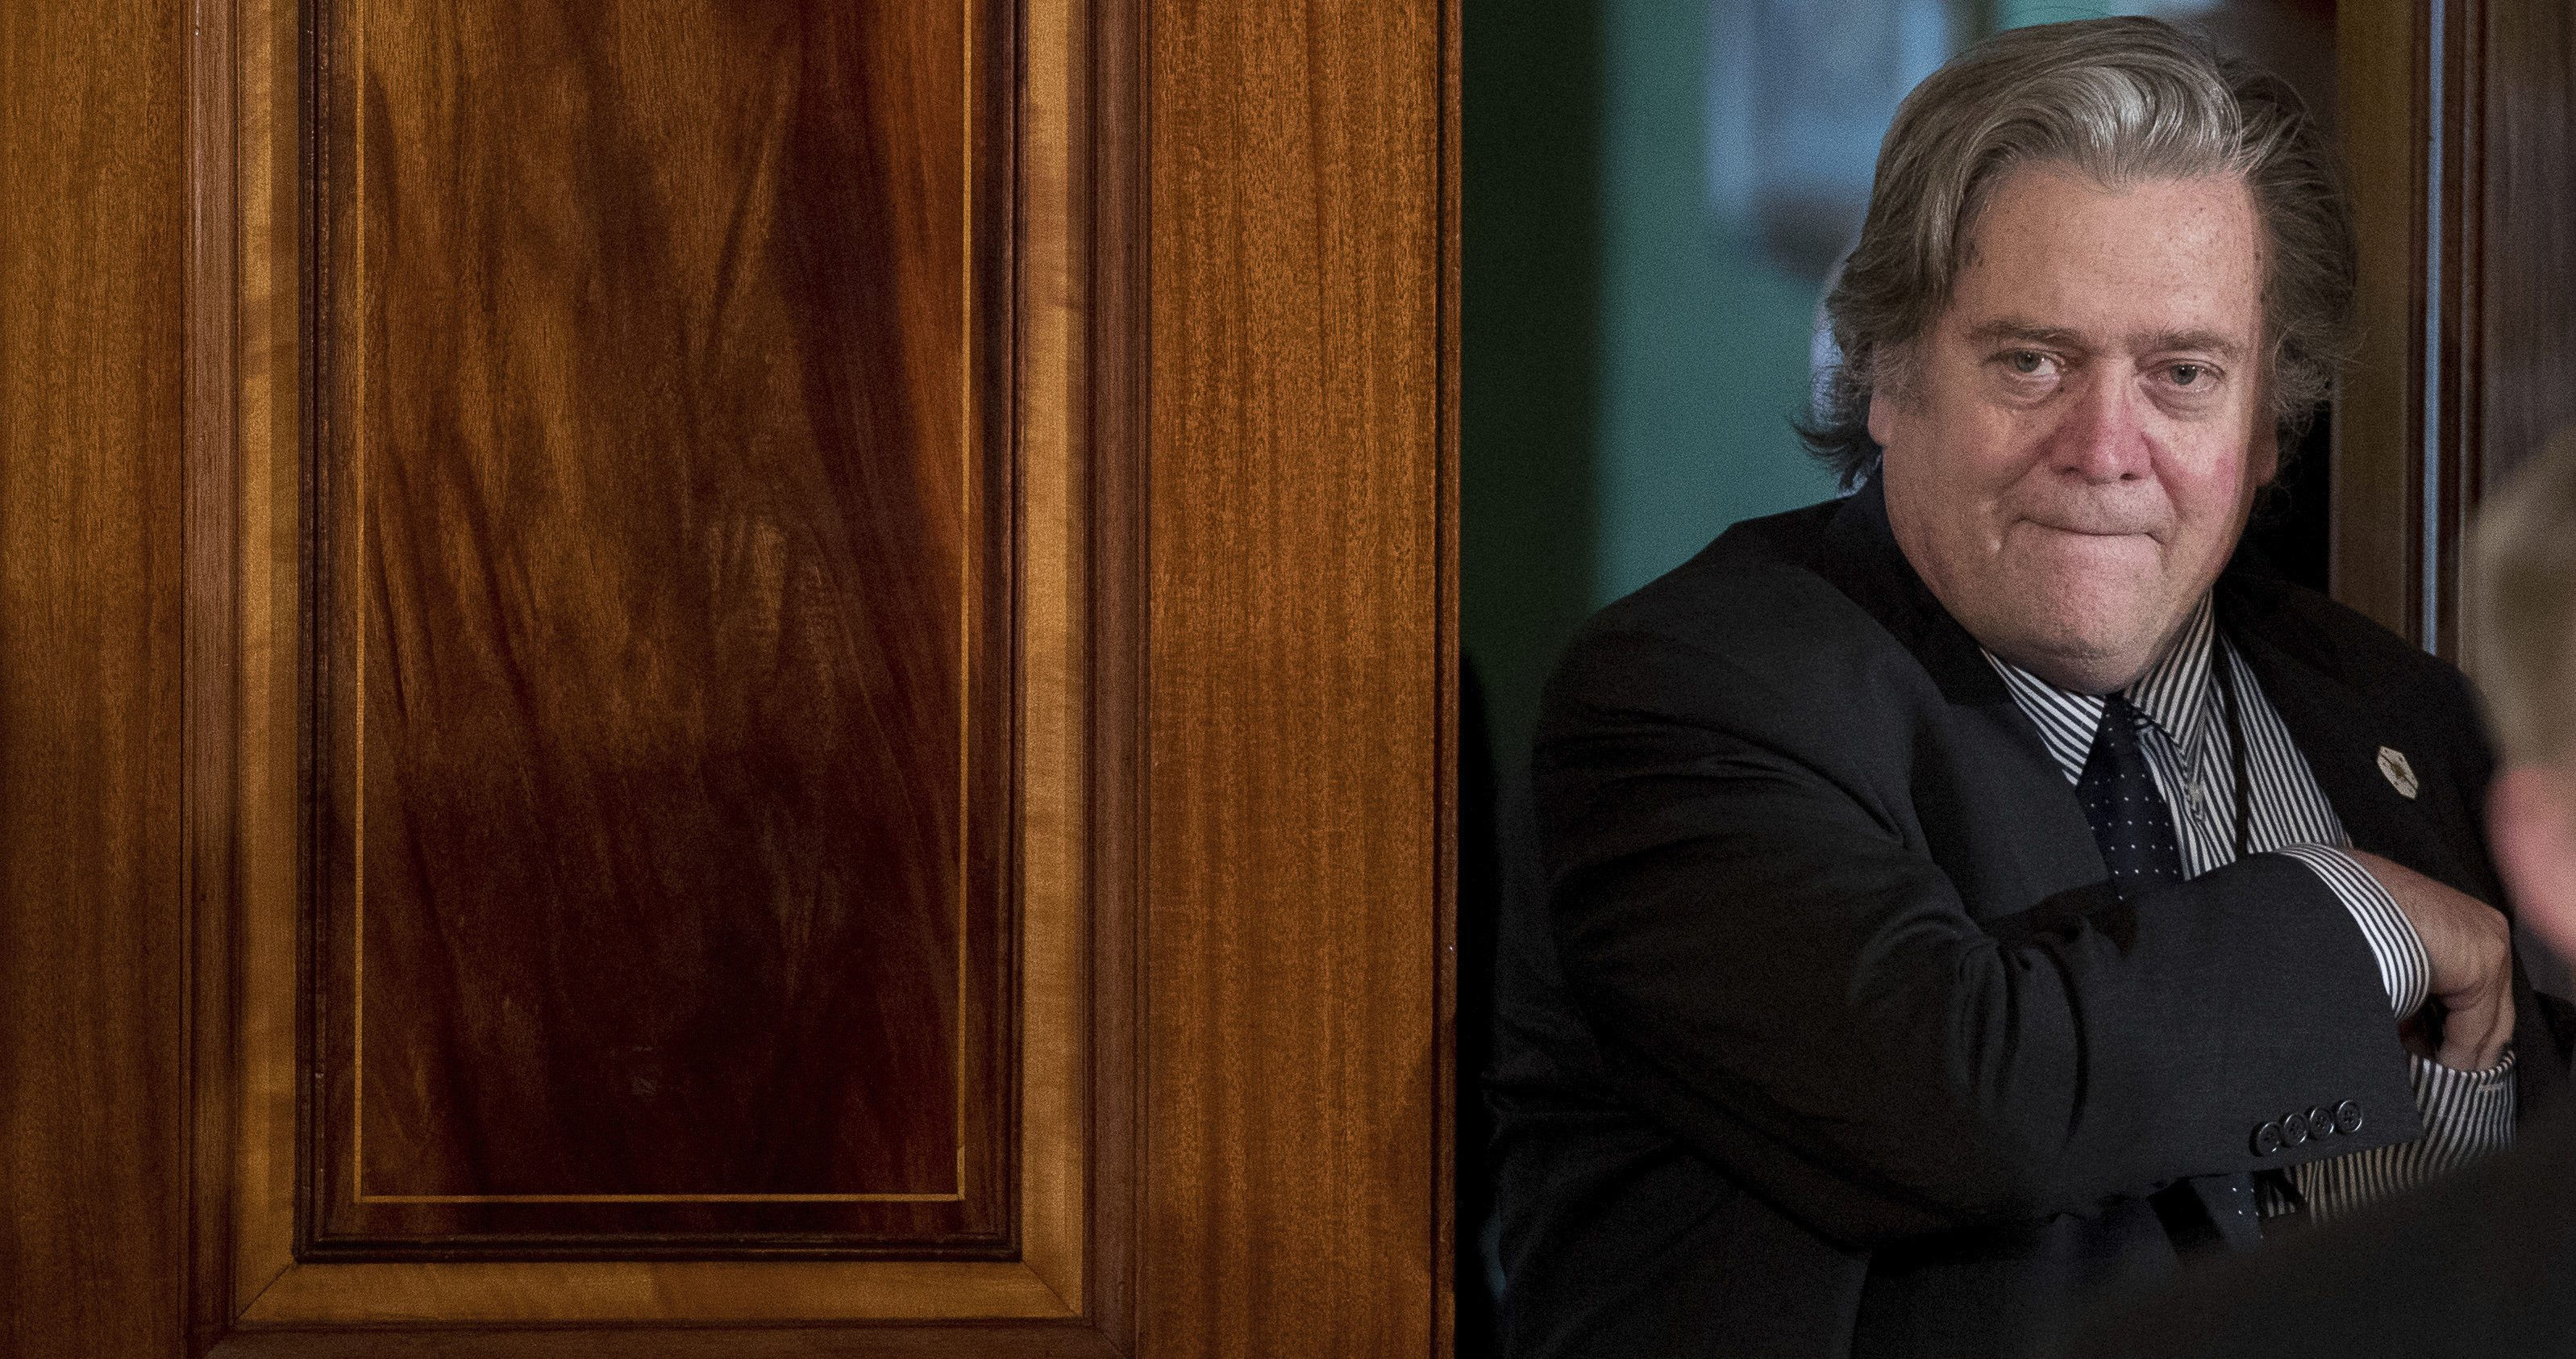 President Donald Trump's White House Senior Adviser Steve Bannon arrives before a news conference between President Donald Trump and Italian Prime Minister Paolo Gentiloni in the East Room of the White House in Washington, Thursday, April 20, 2017.